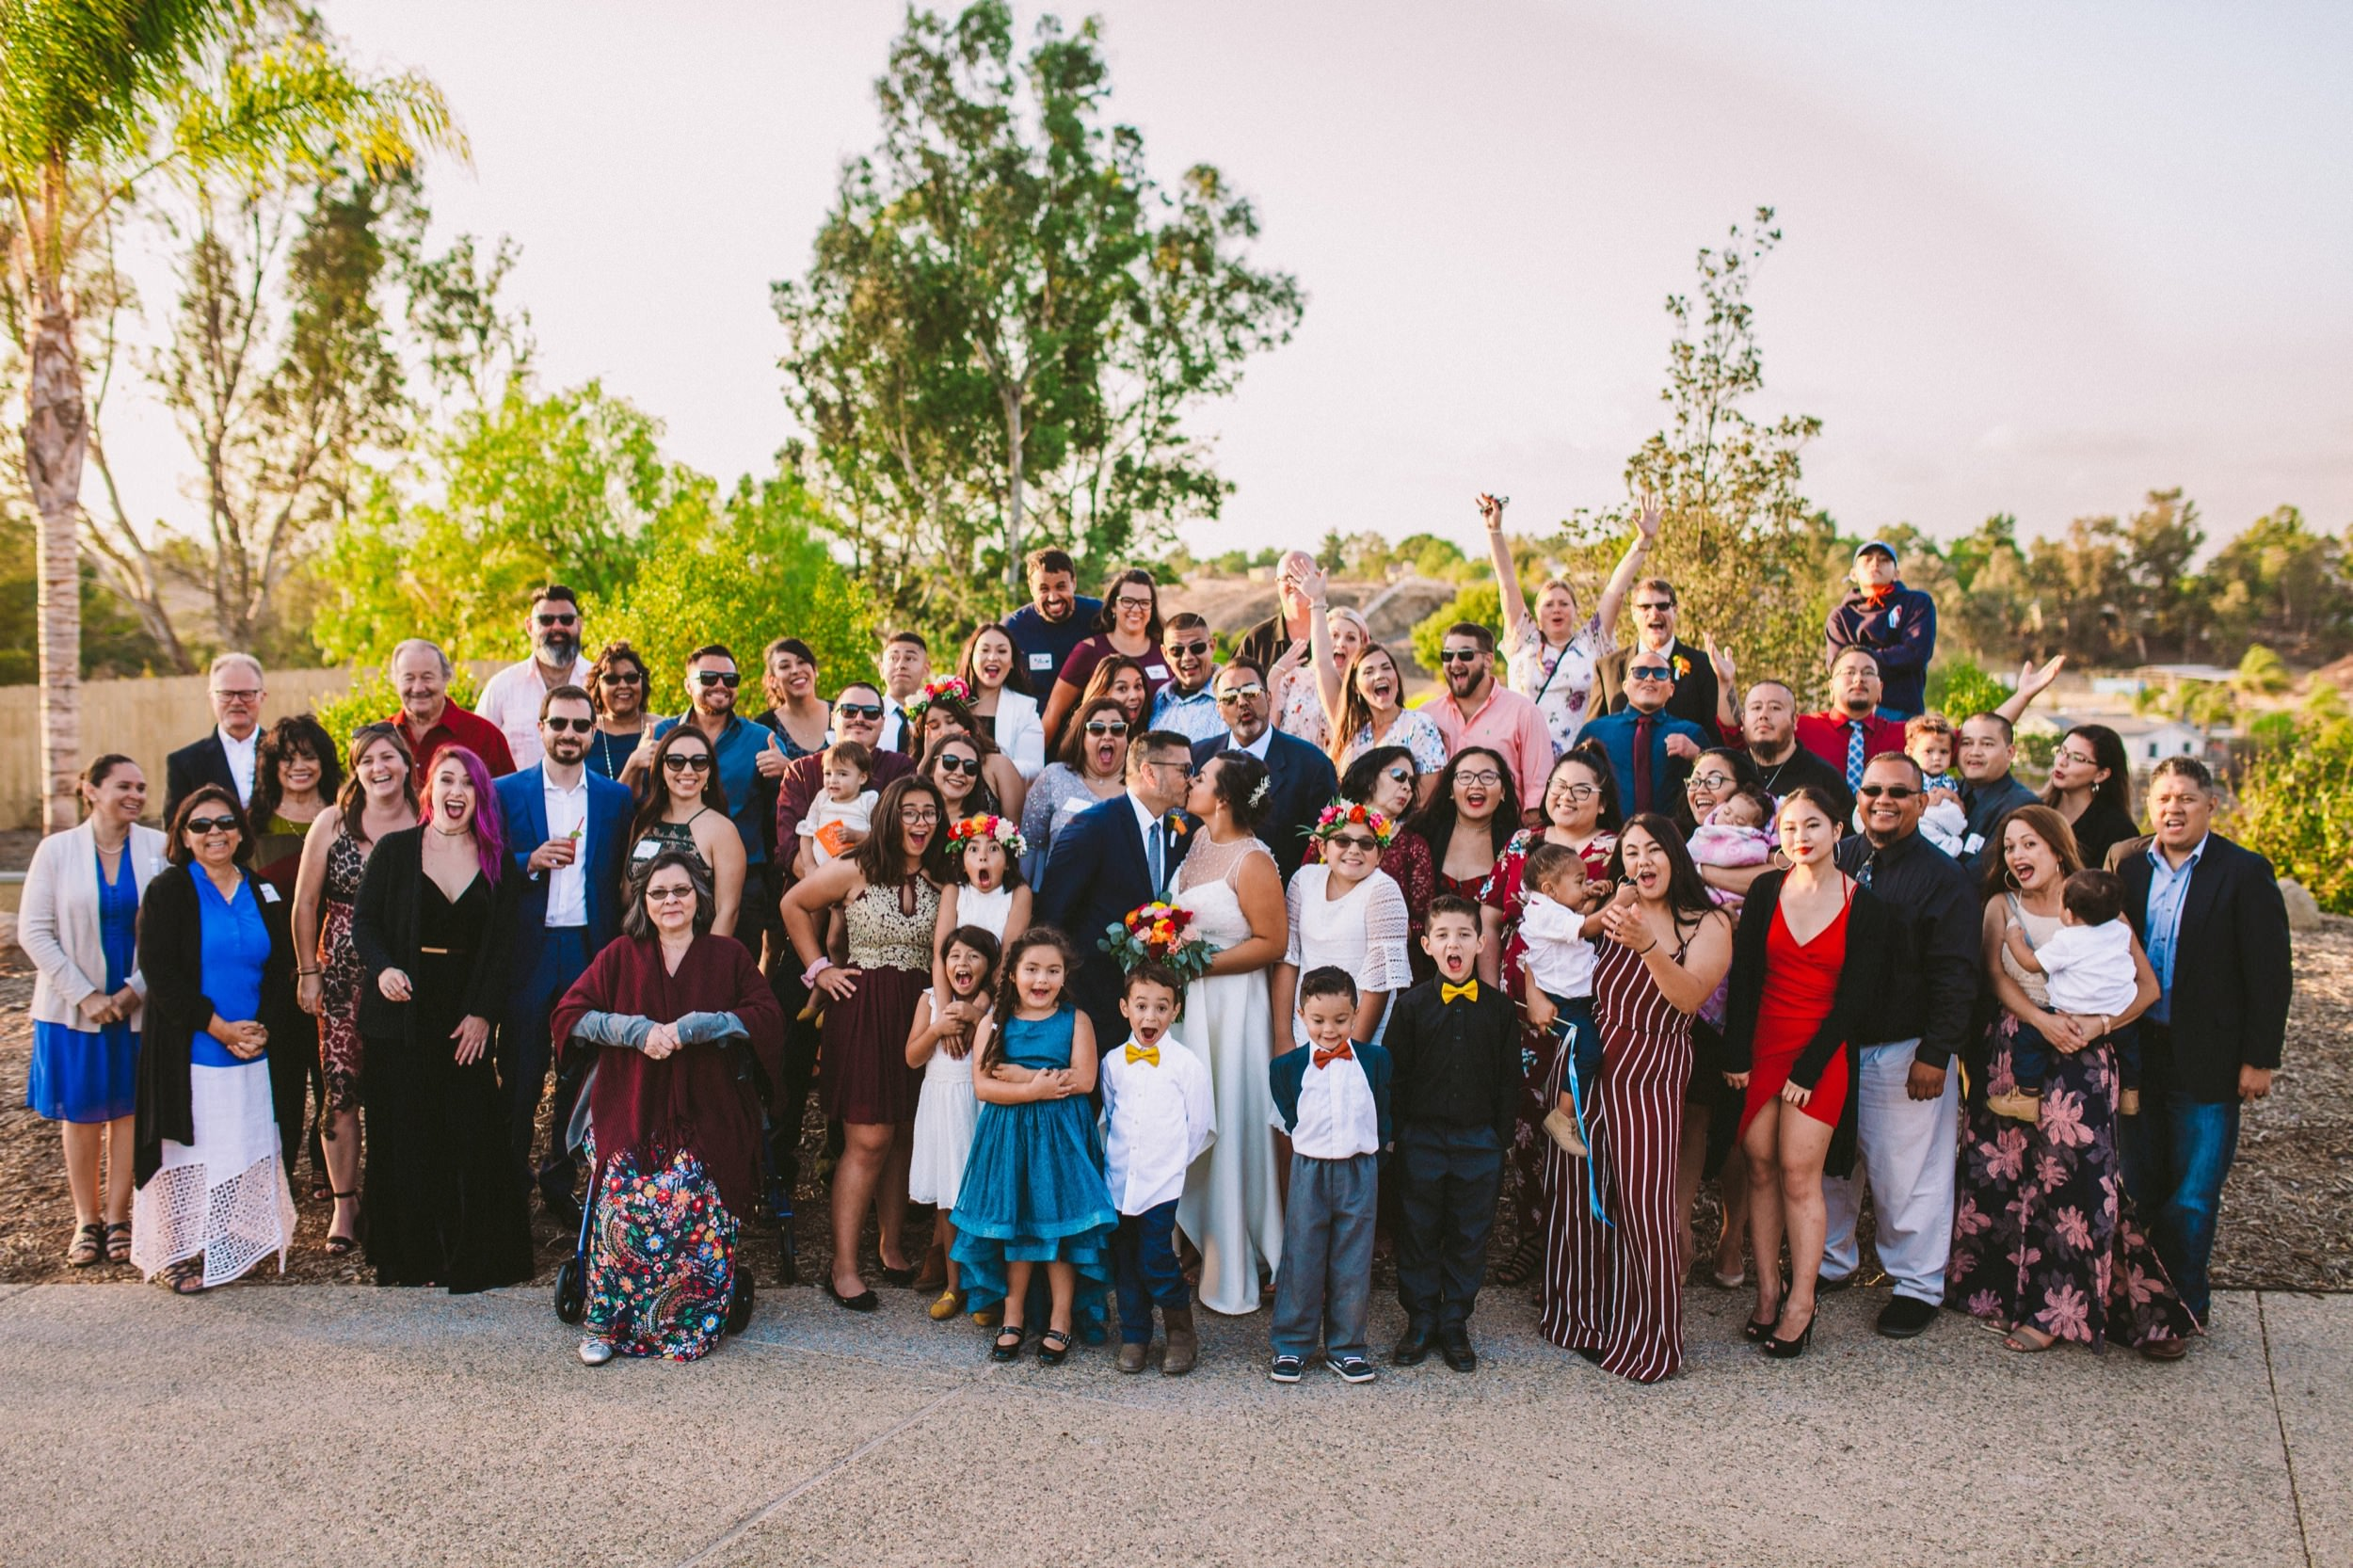 Intimate, Relaxed & Colorful Wedding Photography in Temecula-364.jpg